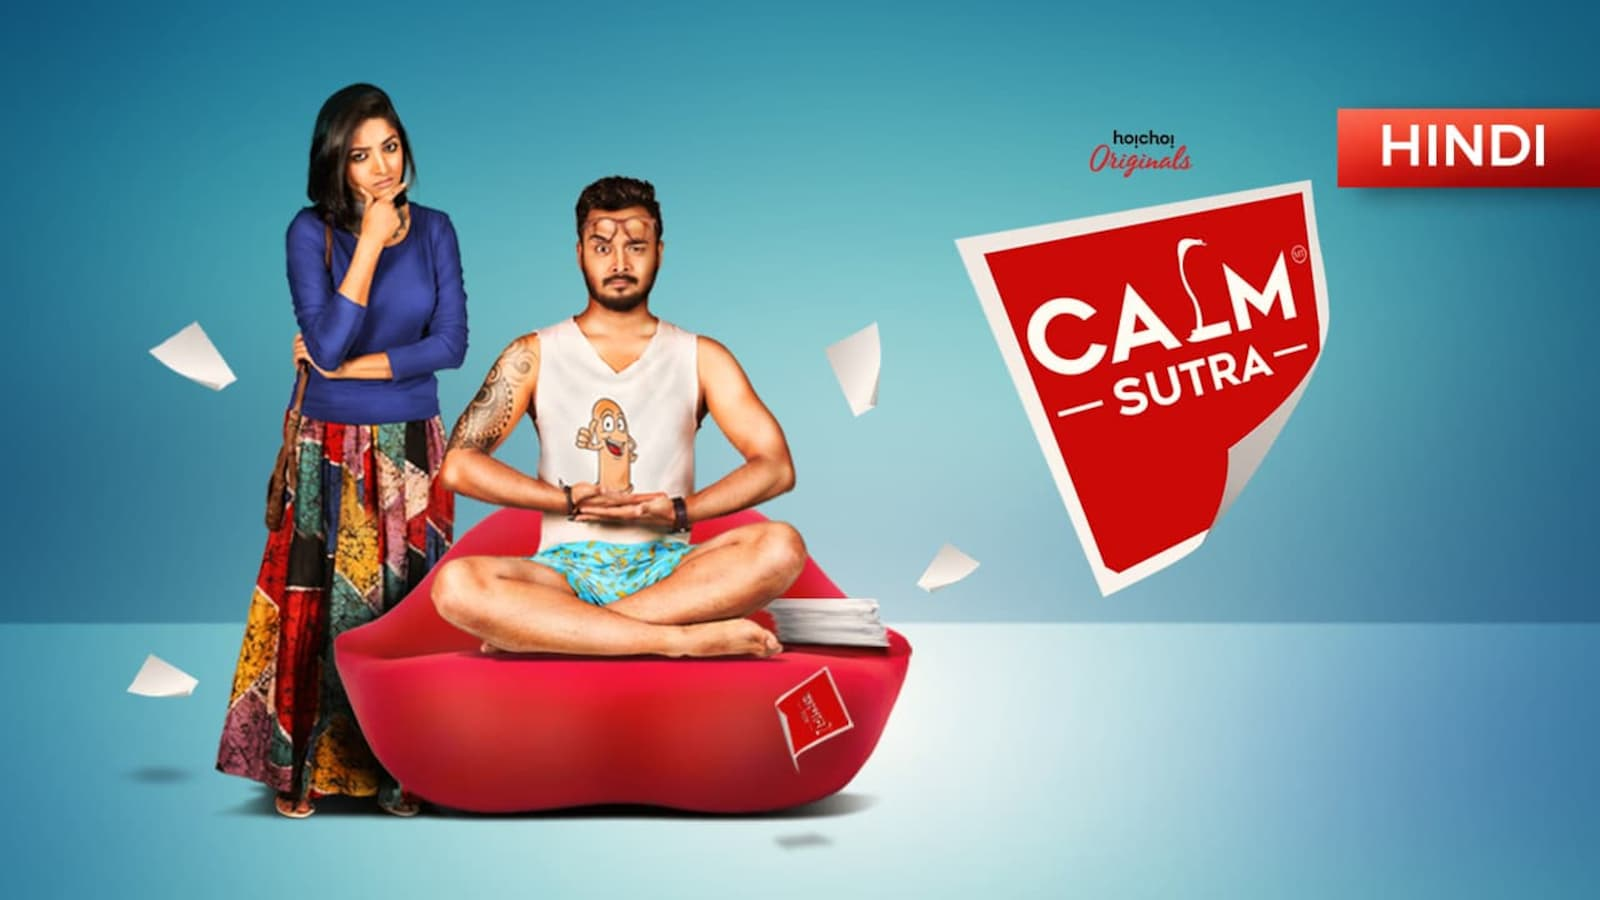 18+ Calm Sutra (Japani Toy) (2019) 720p Hindi S01 Complete Ep(01-07) WEB-DL